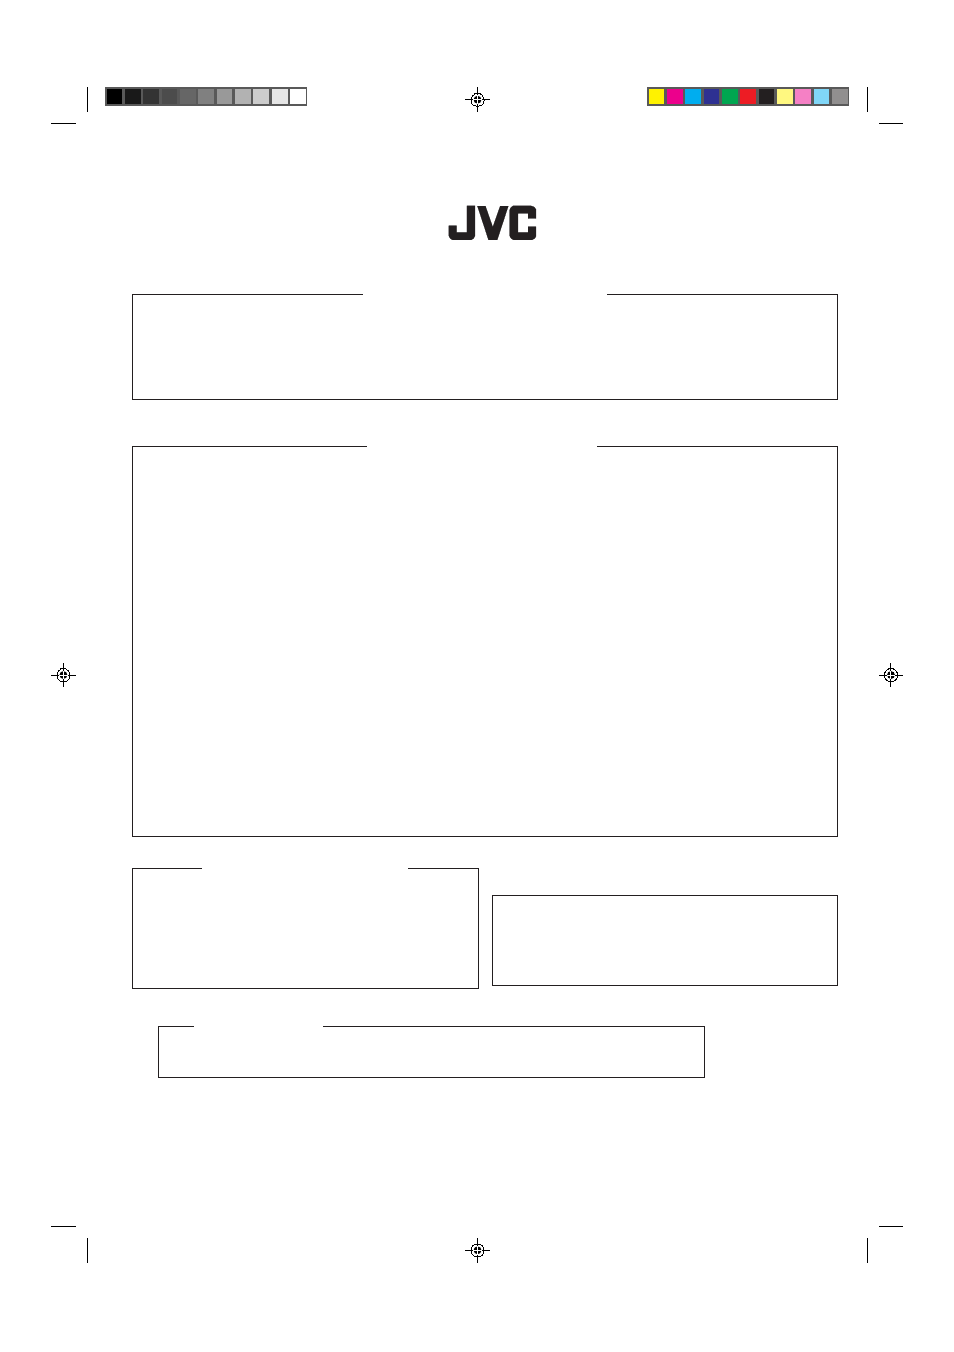 How to locate your jvc service center | JVC RX-6010VBK User Manual | Page